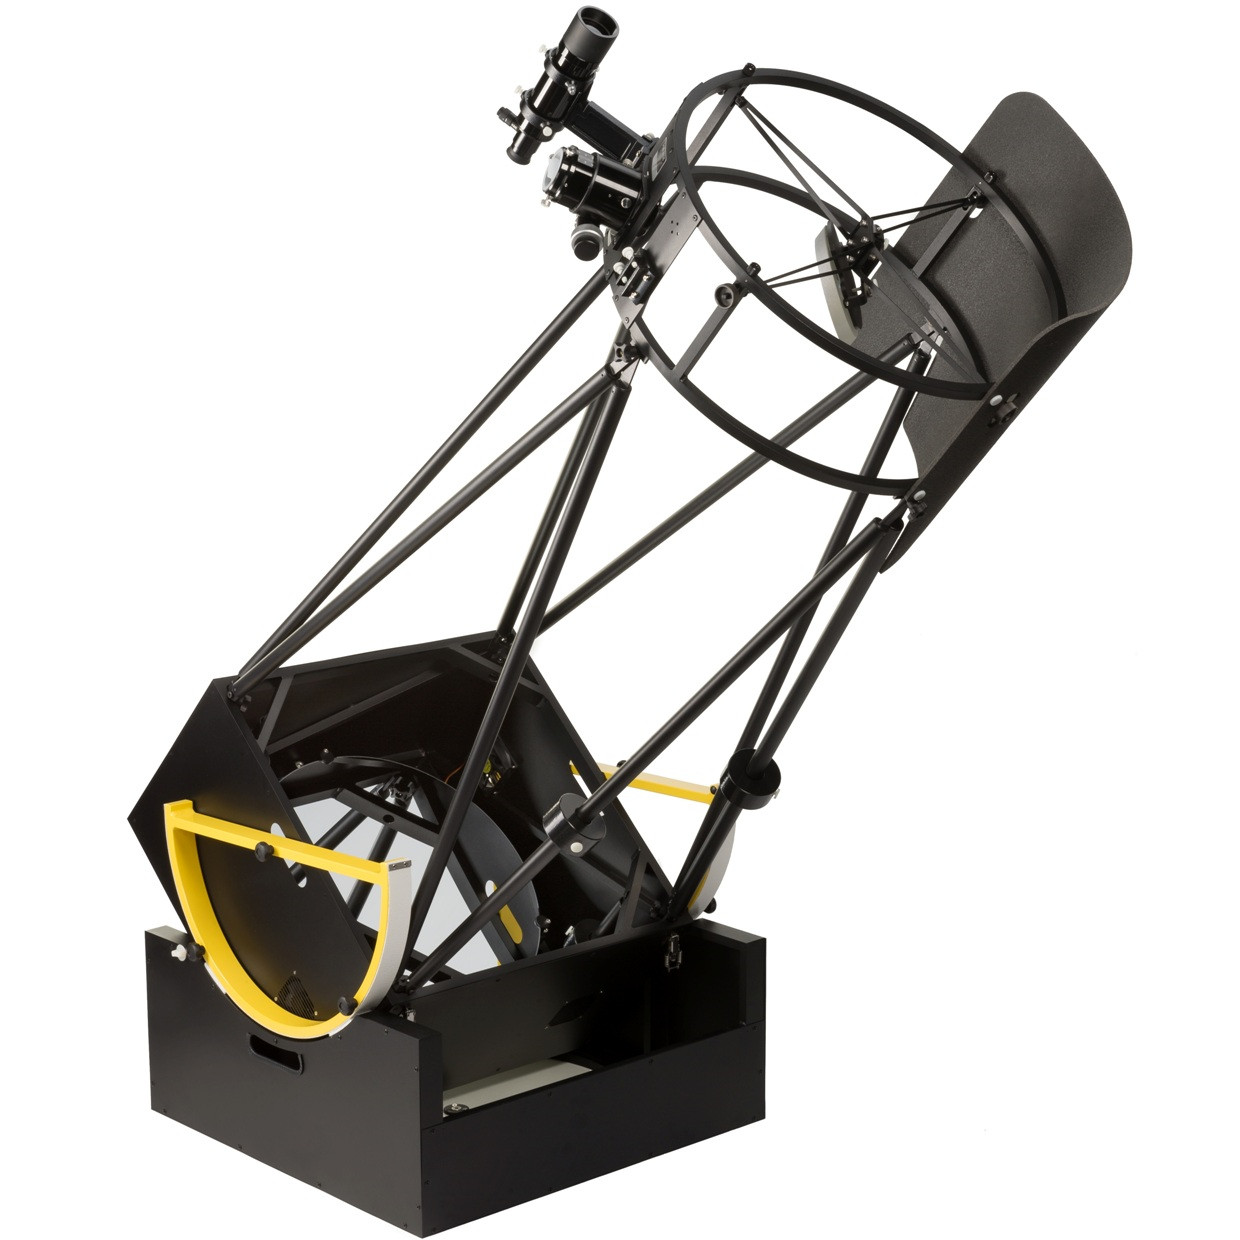 Explore Scientific Ultra Light 20 Inch Dobsonian